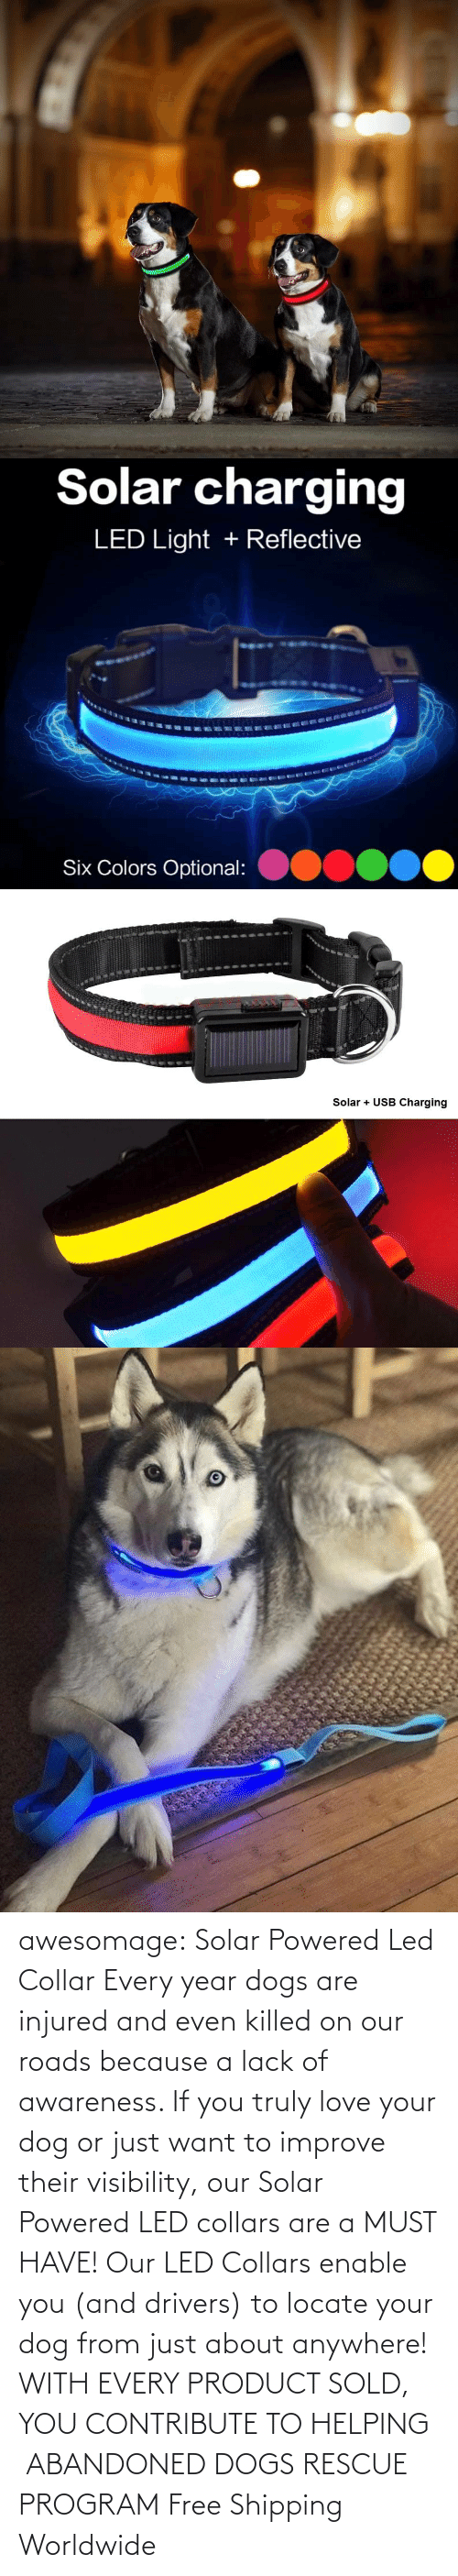 If You: awesomage: Solar Powered Led Collar   Every year dogs are injured and even killed on our roads because a lack of awareness. If you truly love your dog or just want to improve their visibility, our Solar Powered LED collars are a MUST HAVE!   Our LED Collars enable you (and drivers) to locate your dog from just about anywhere!     WITH EVERY PRODUCT SOLD, YOU CONTRIBUTE TO HELPING  ABANDONED DOGS RESCUE PROGRAM     Free Shipping Worldwide